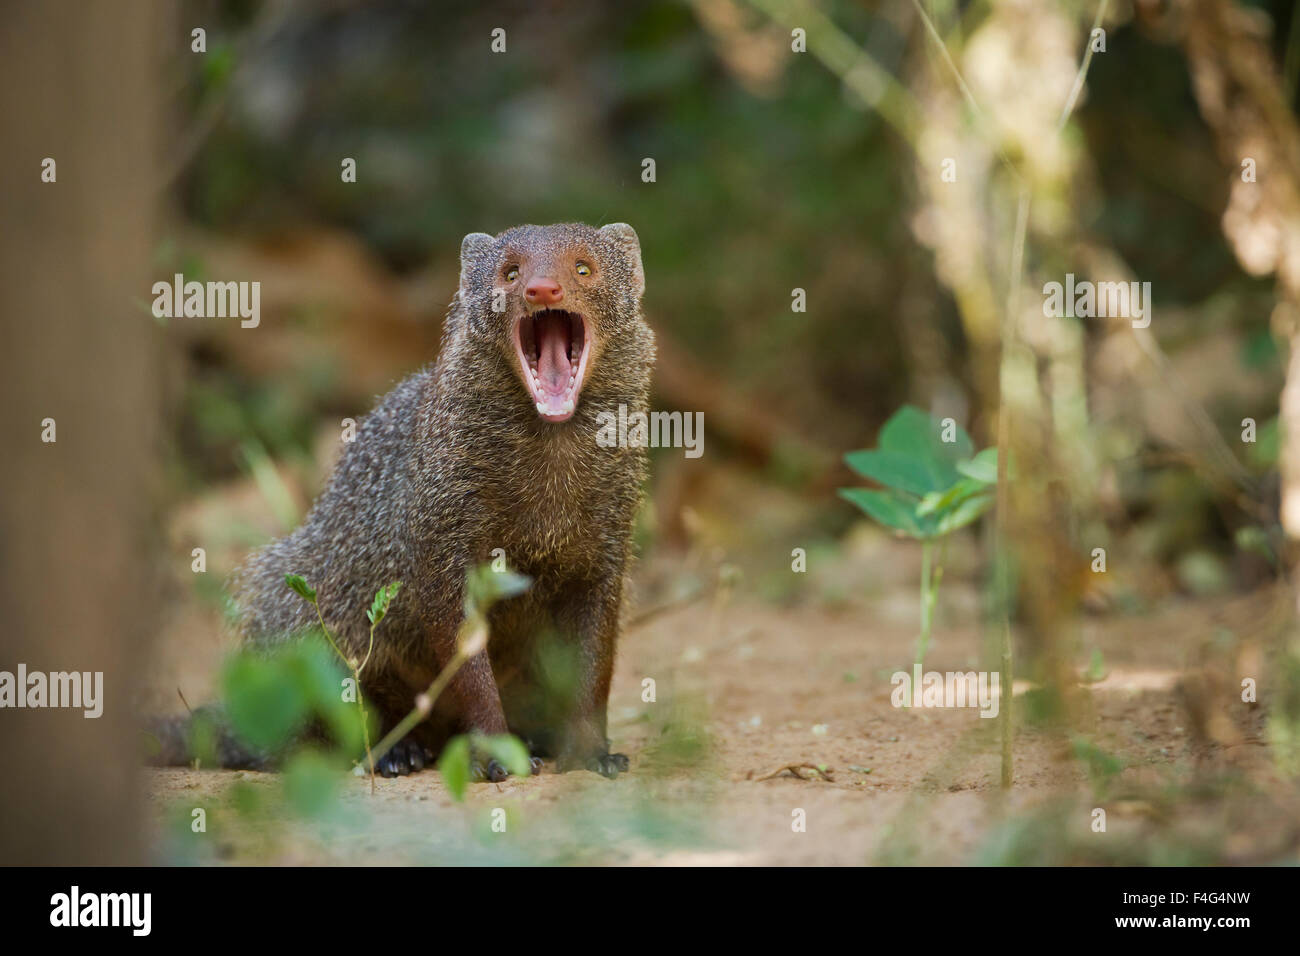 India gray mongoose specie Herpestes edwardsii - Stock Image